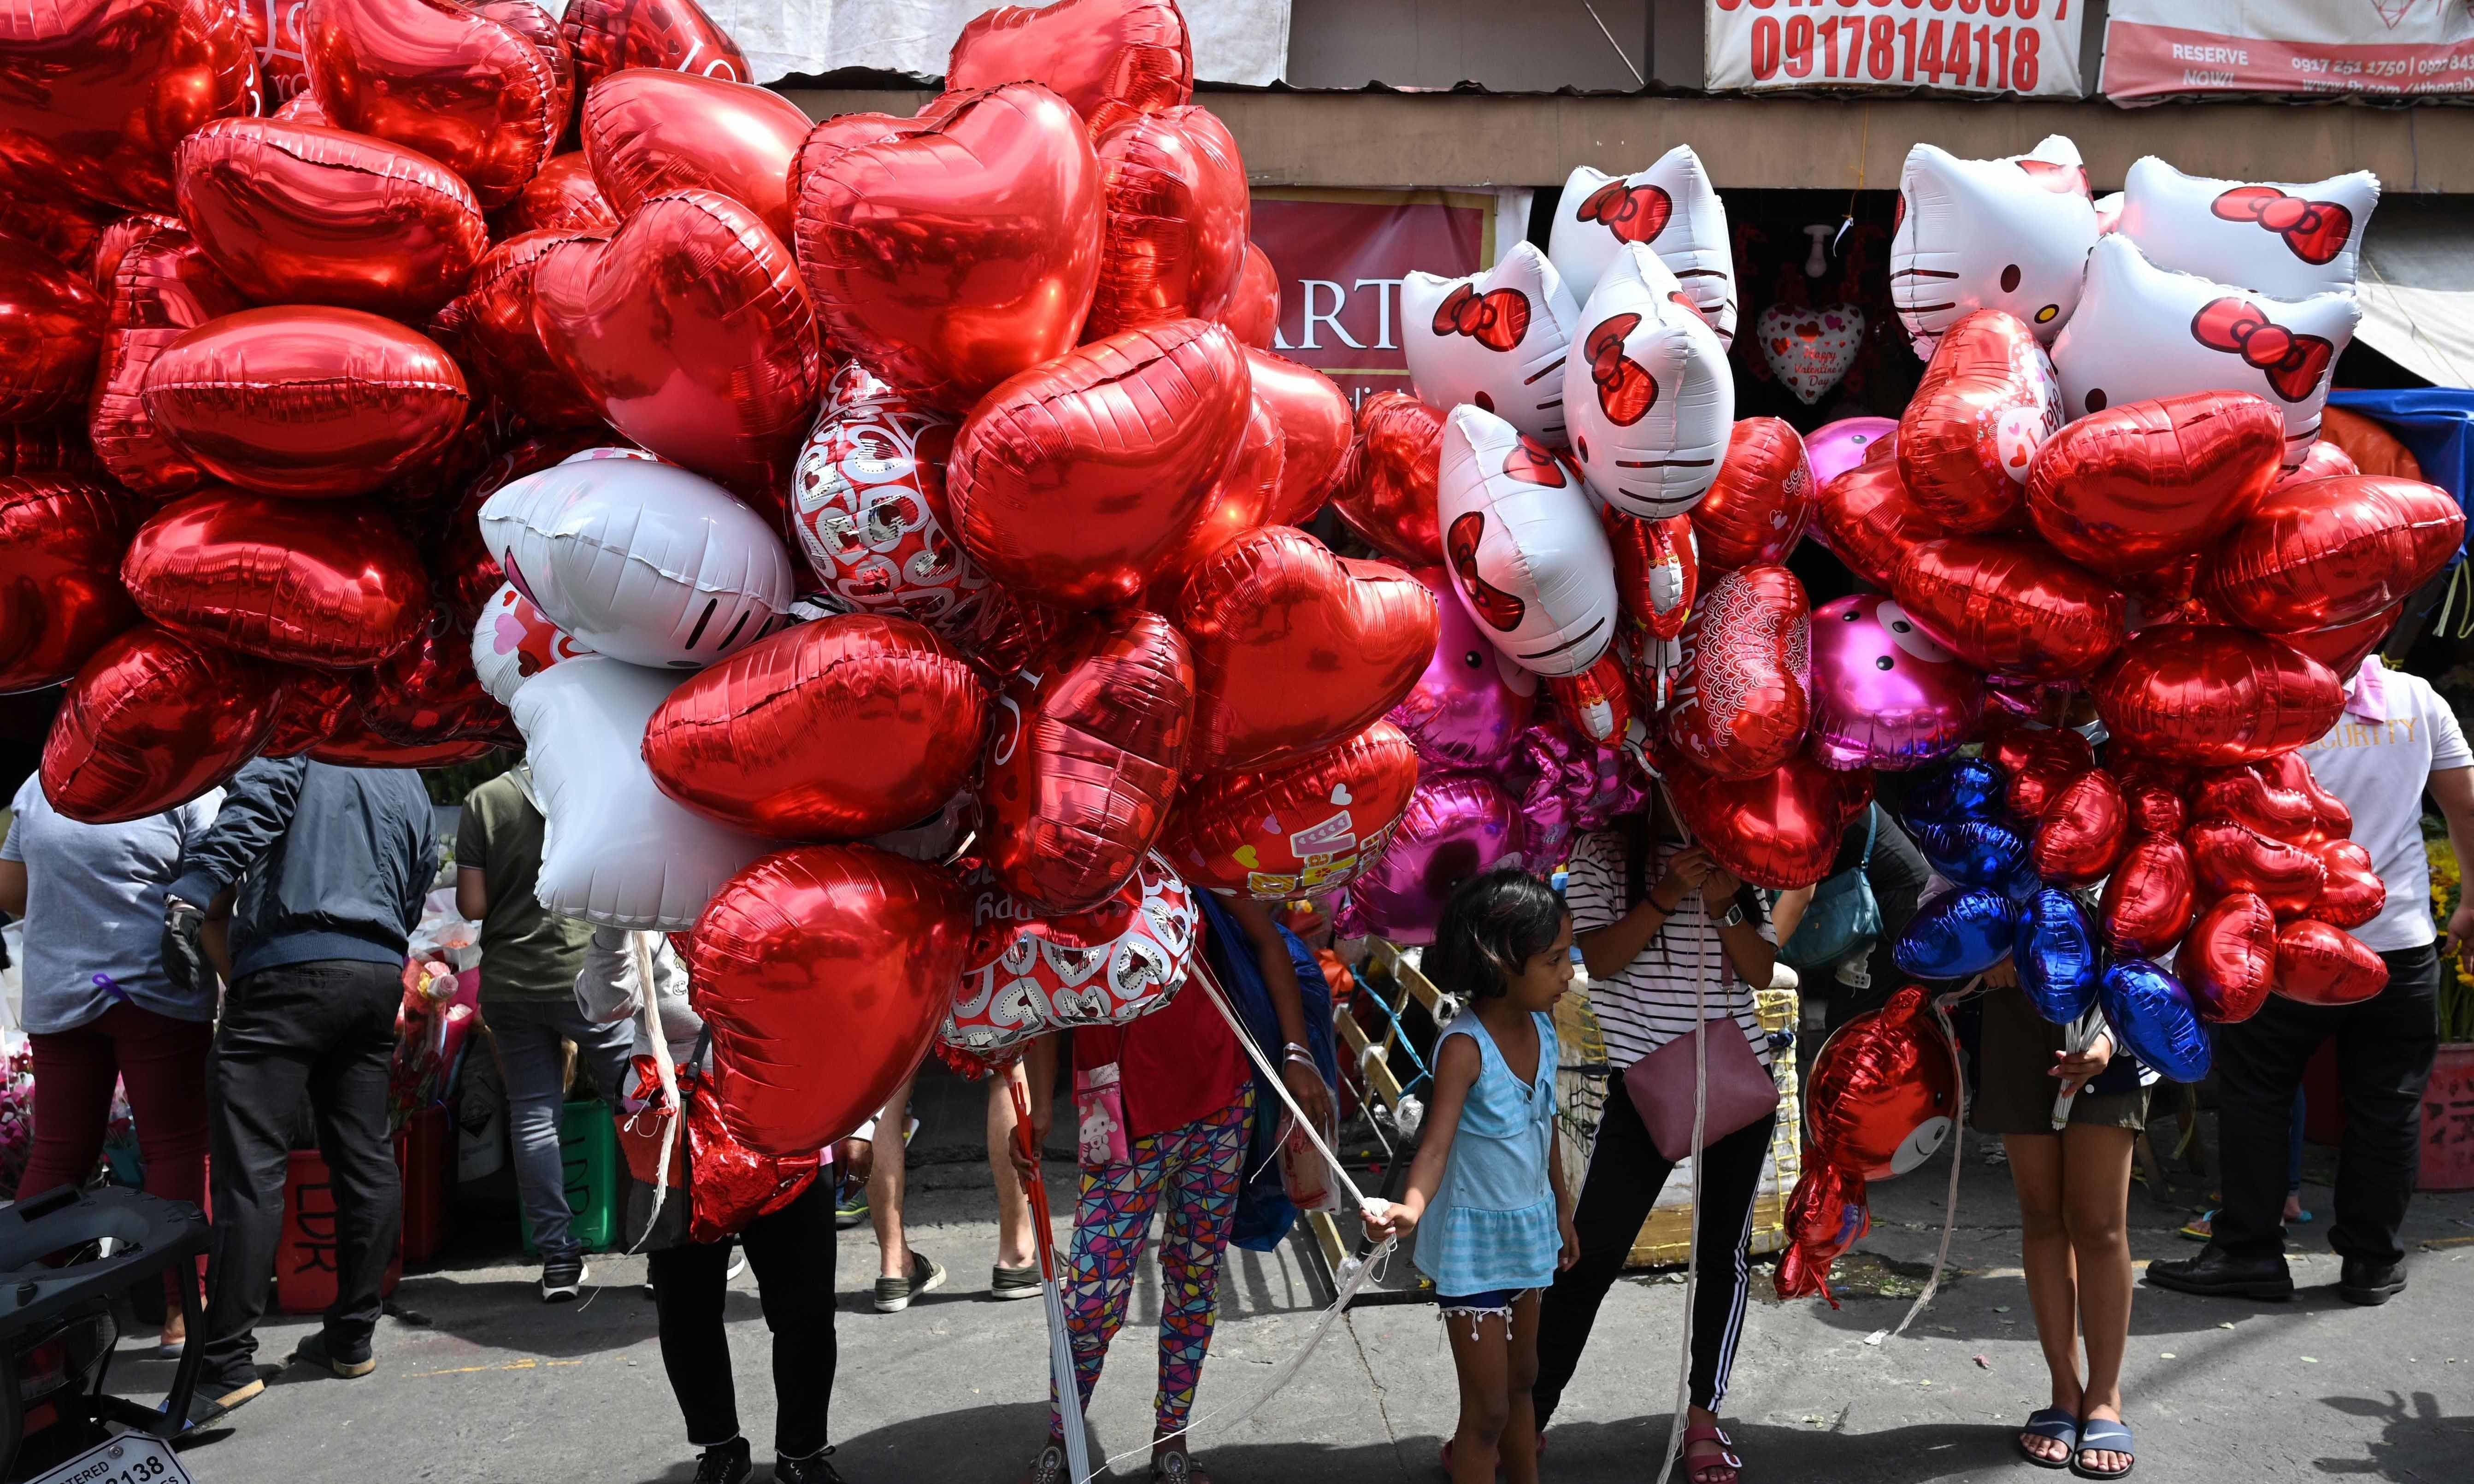 Vendors selling heart-shaped balloons wait for customers on Valentine's Day at a flower market in Manila on February 14. — AFP